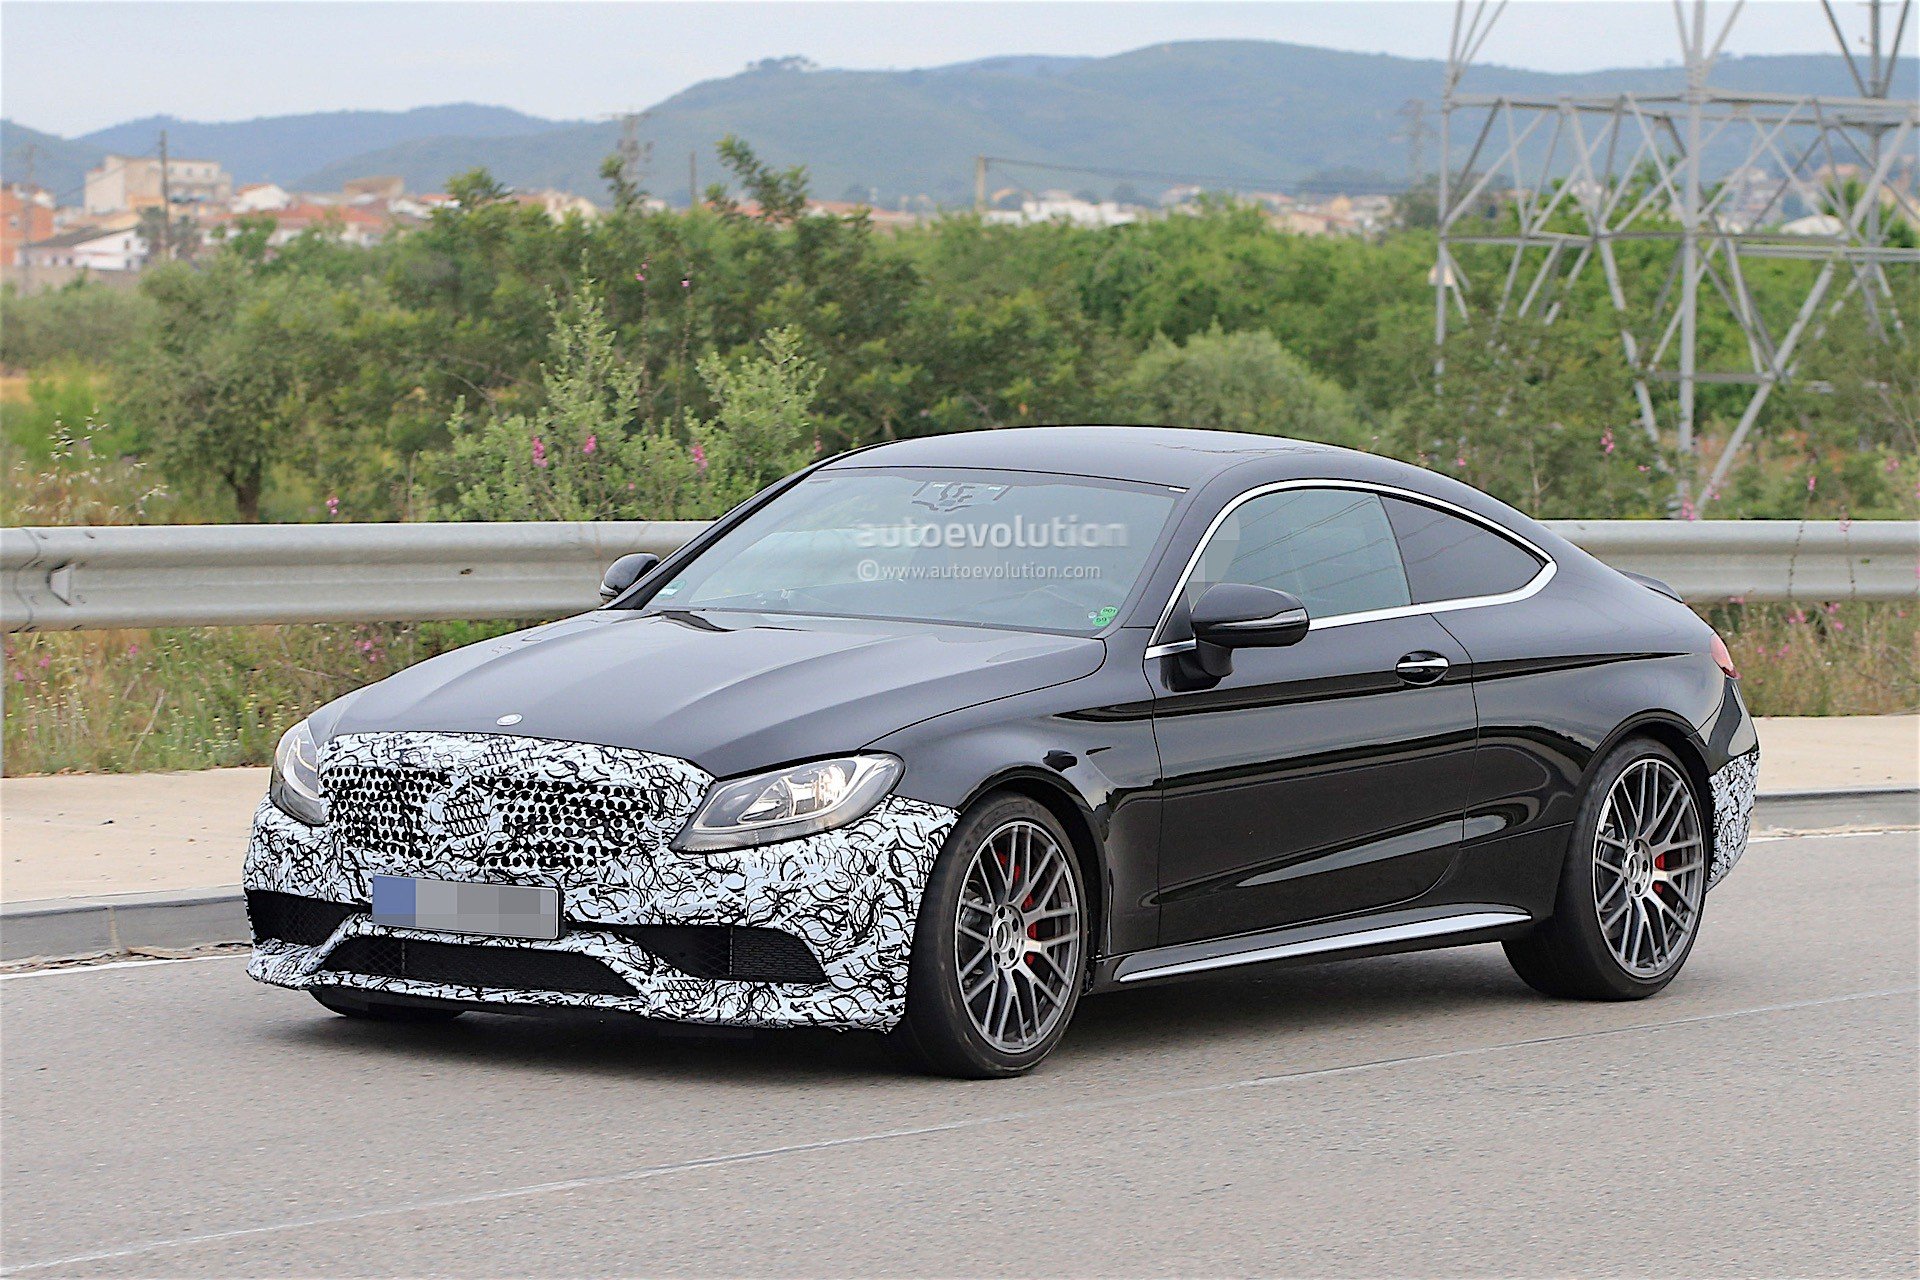 2018 Mercedes-AMG C63 Coupe Facelift Spied for the First ...